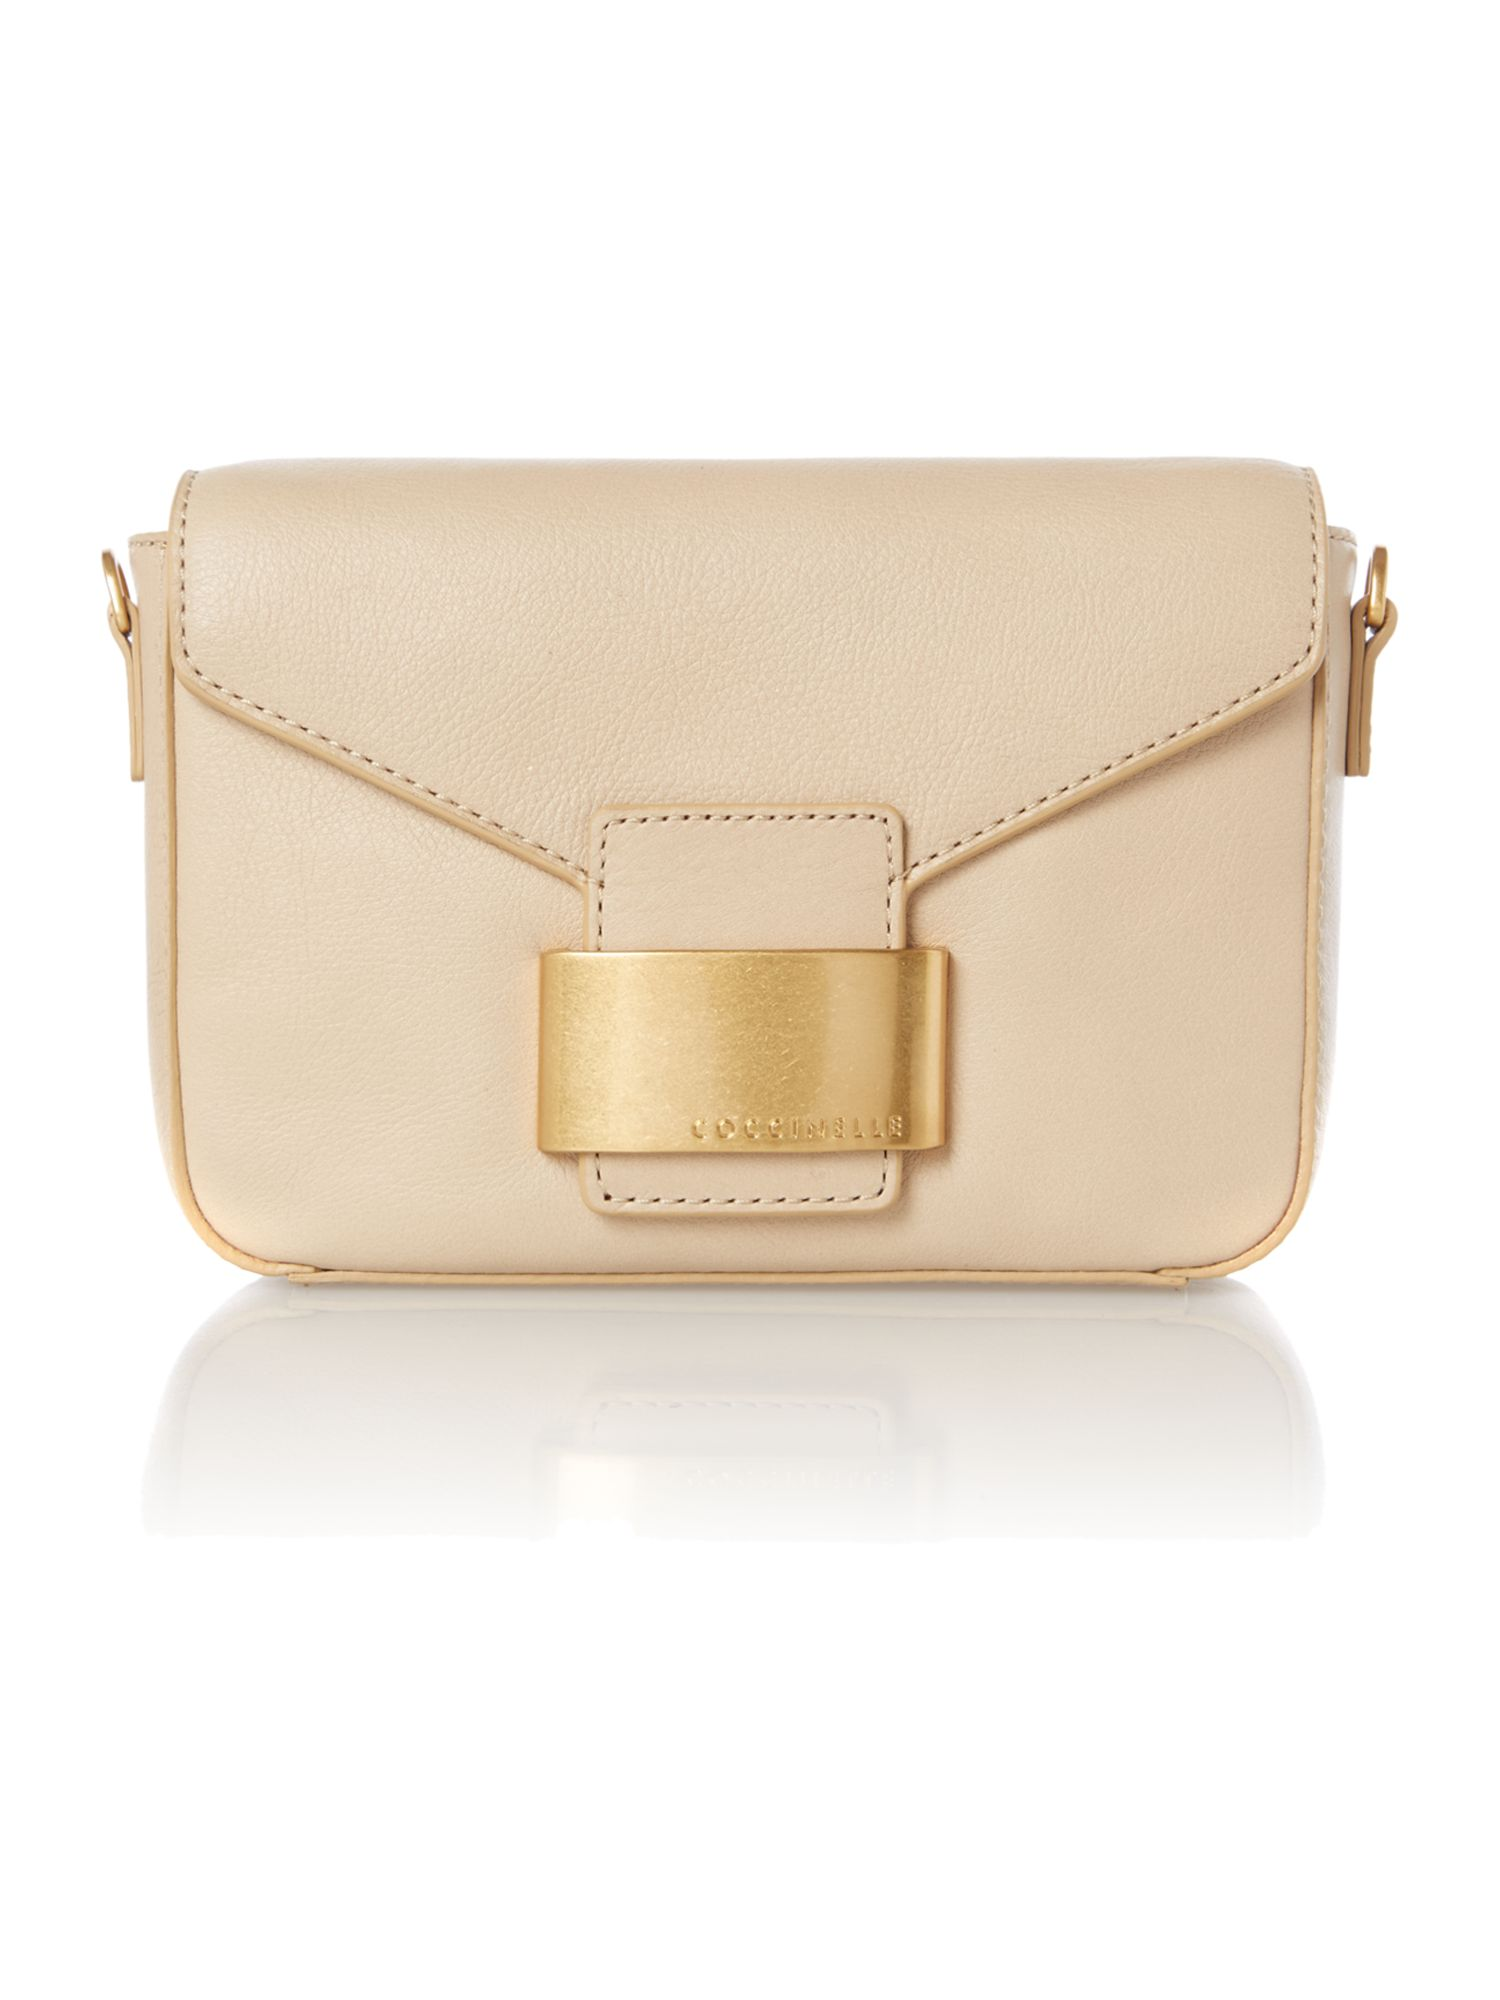 Tan small cross body bag